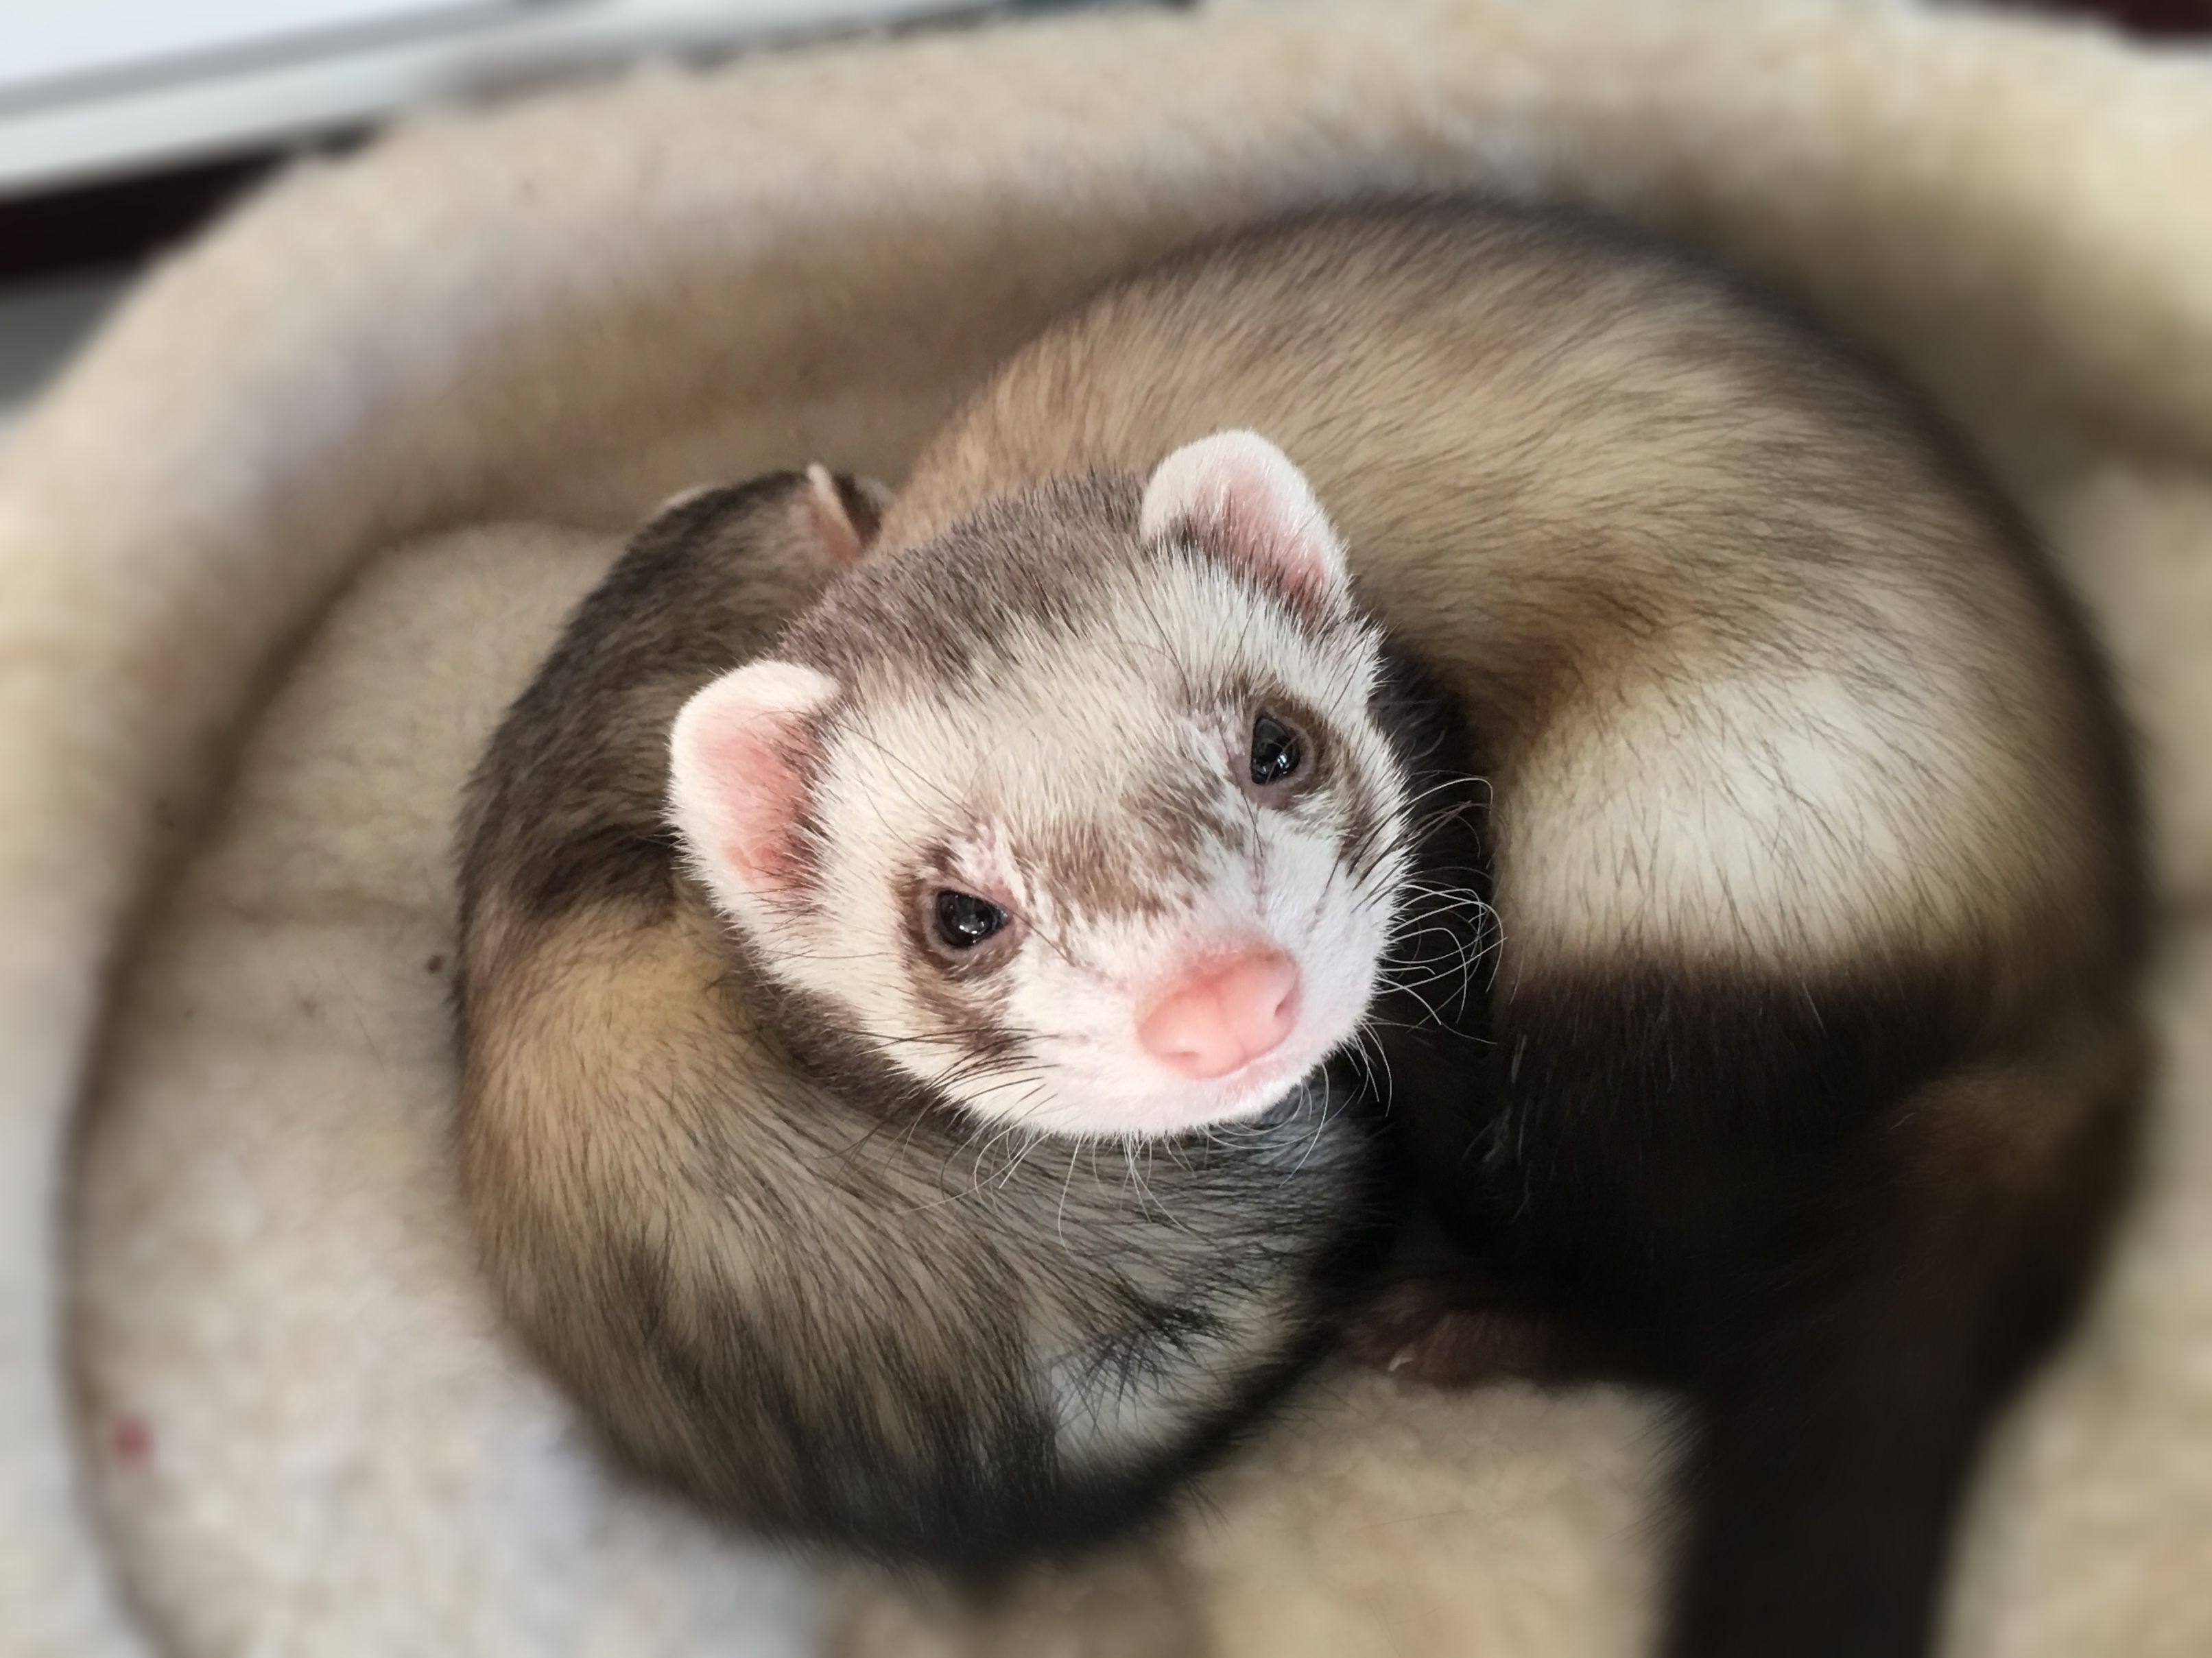 Ferris The Ferret Pet Ferret Cute Ferrets Funny Ferrets